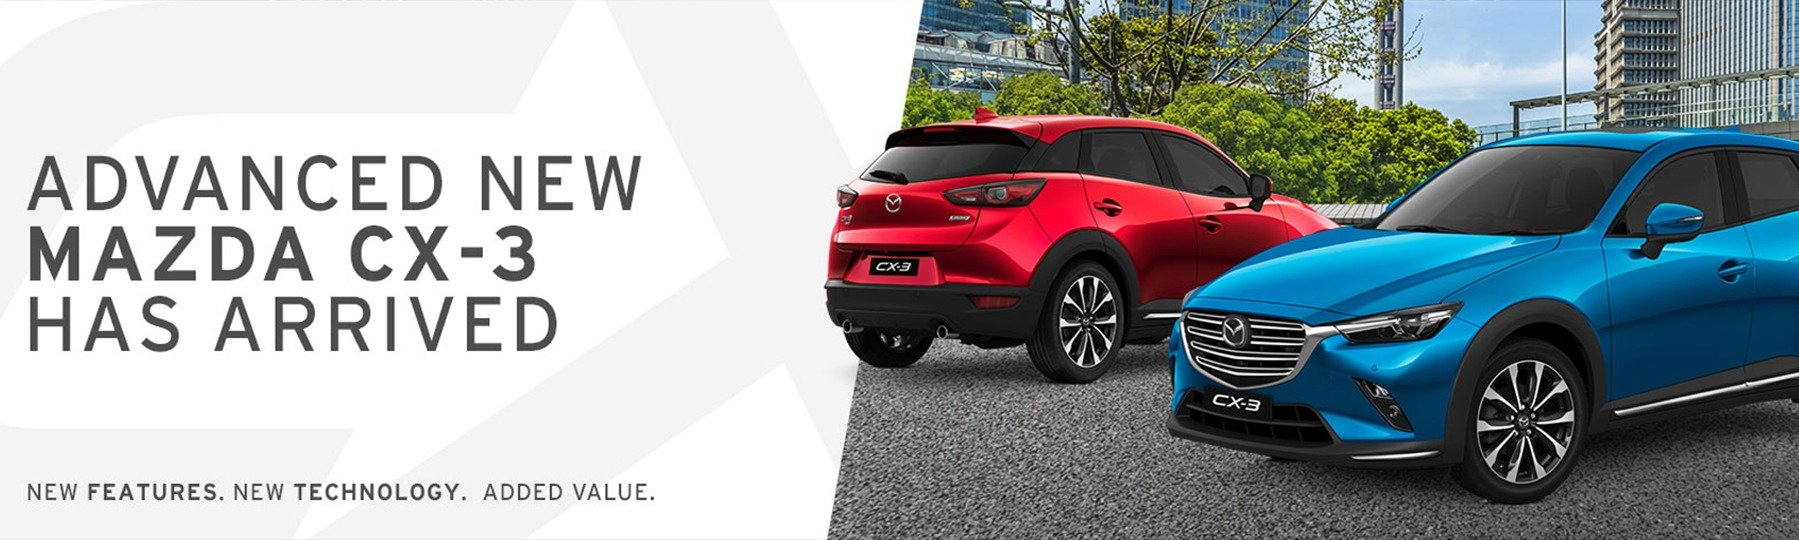 Berwick Mazda All New CX-3